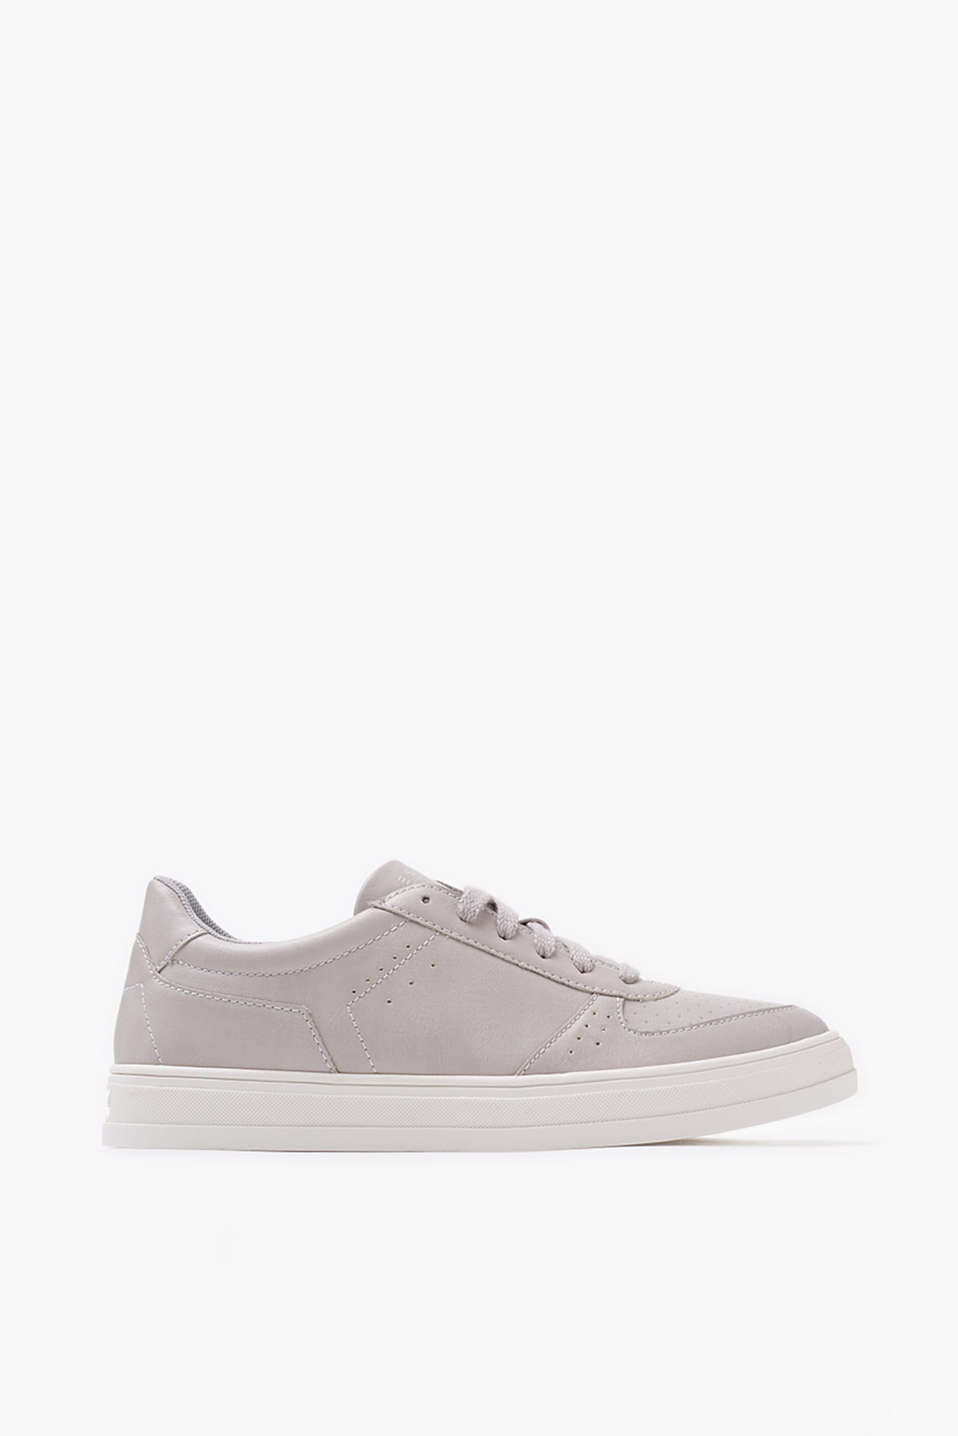 Basketball lace-up trainers, made of smooth faux leather